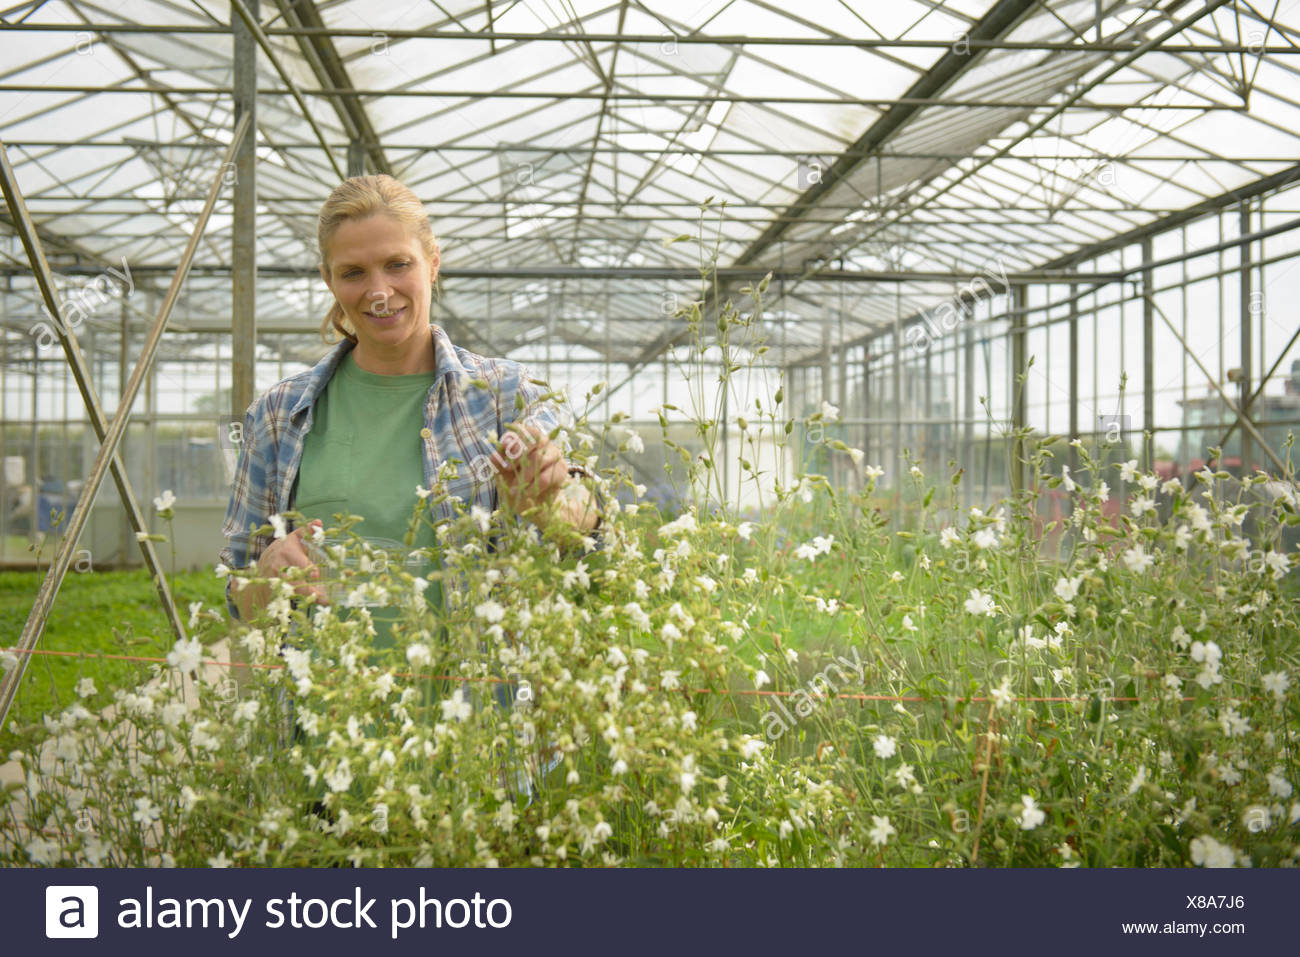 Worker inspecting edible flowers in greenhouse - Stock Image